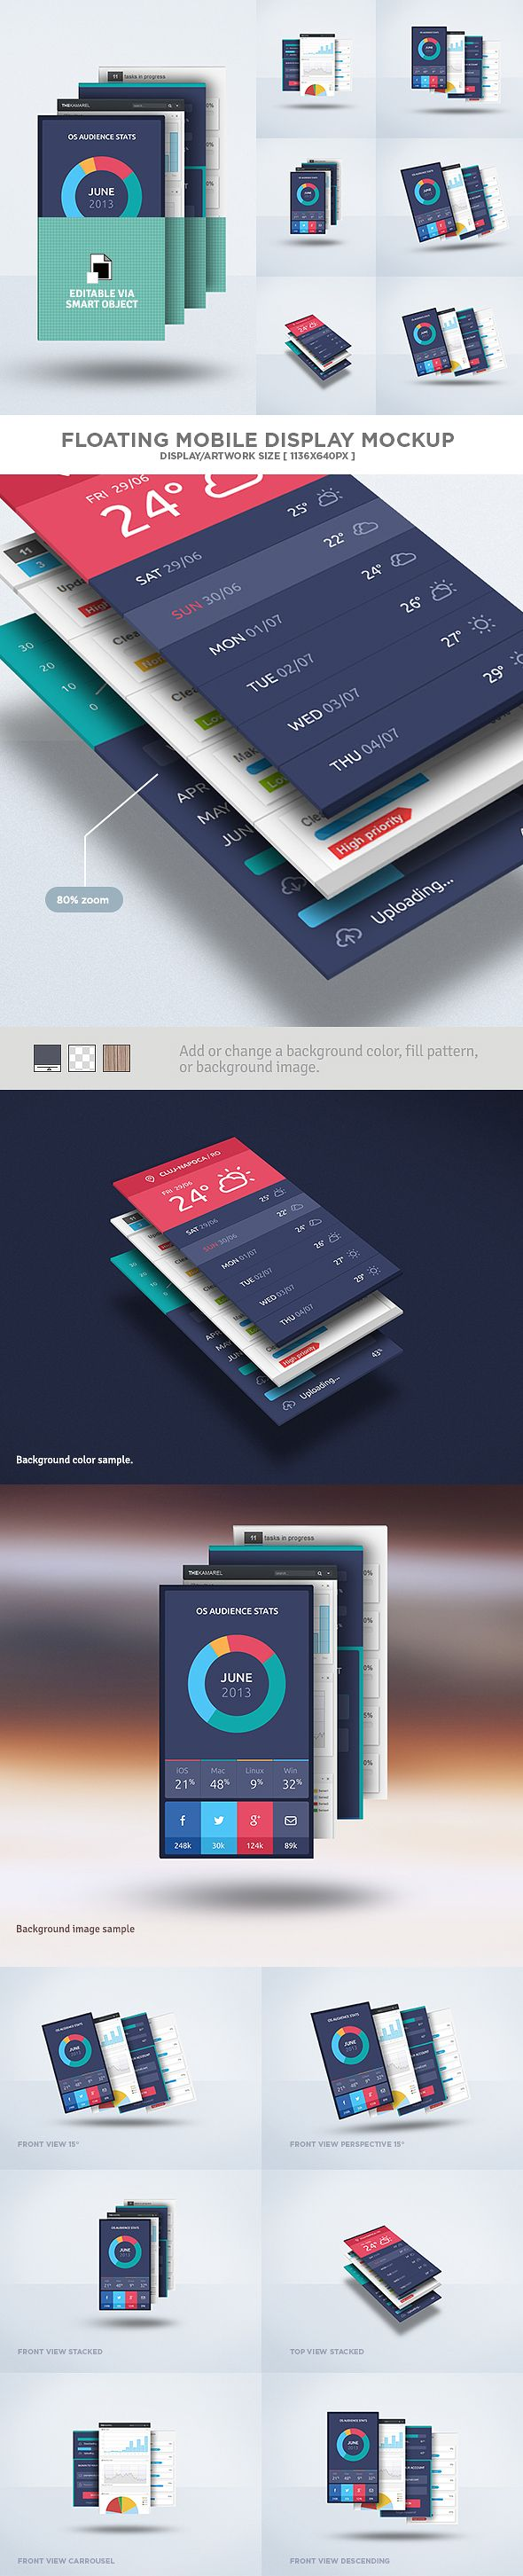 Floating Mobile Display Mock-Up PSD Freebie by Eduardo Mejia, via Behance